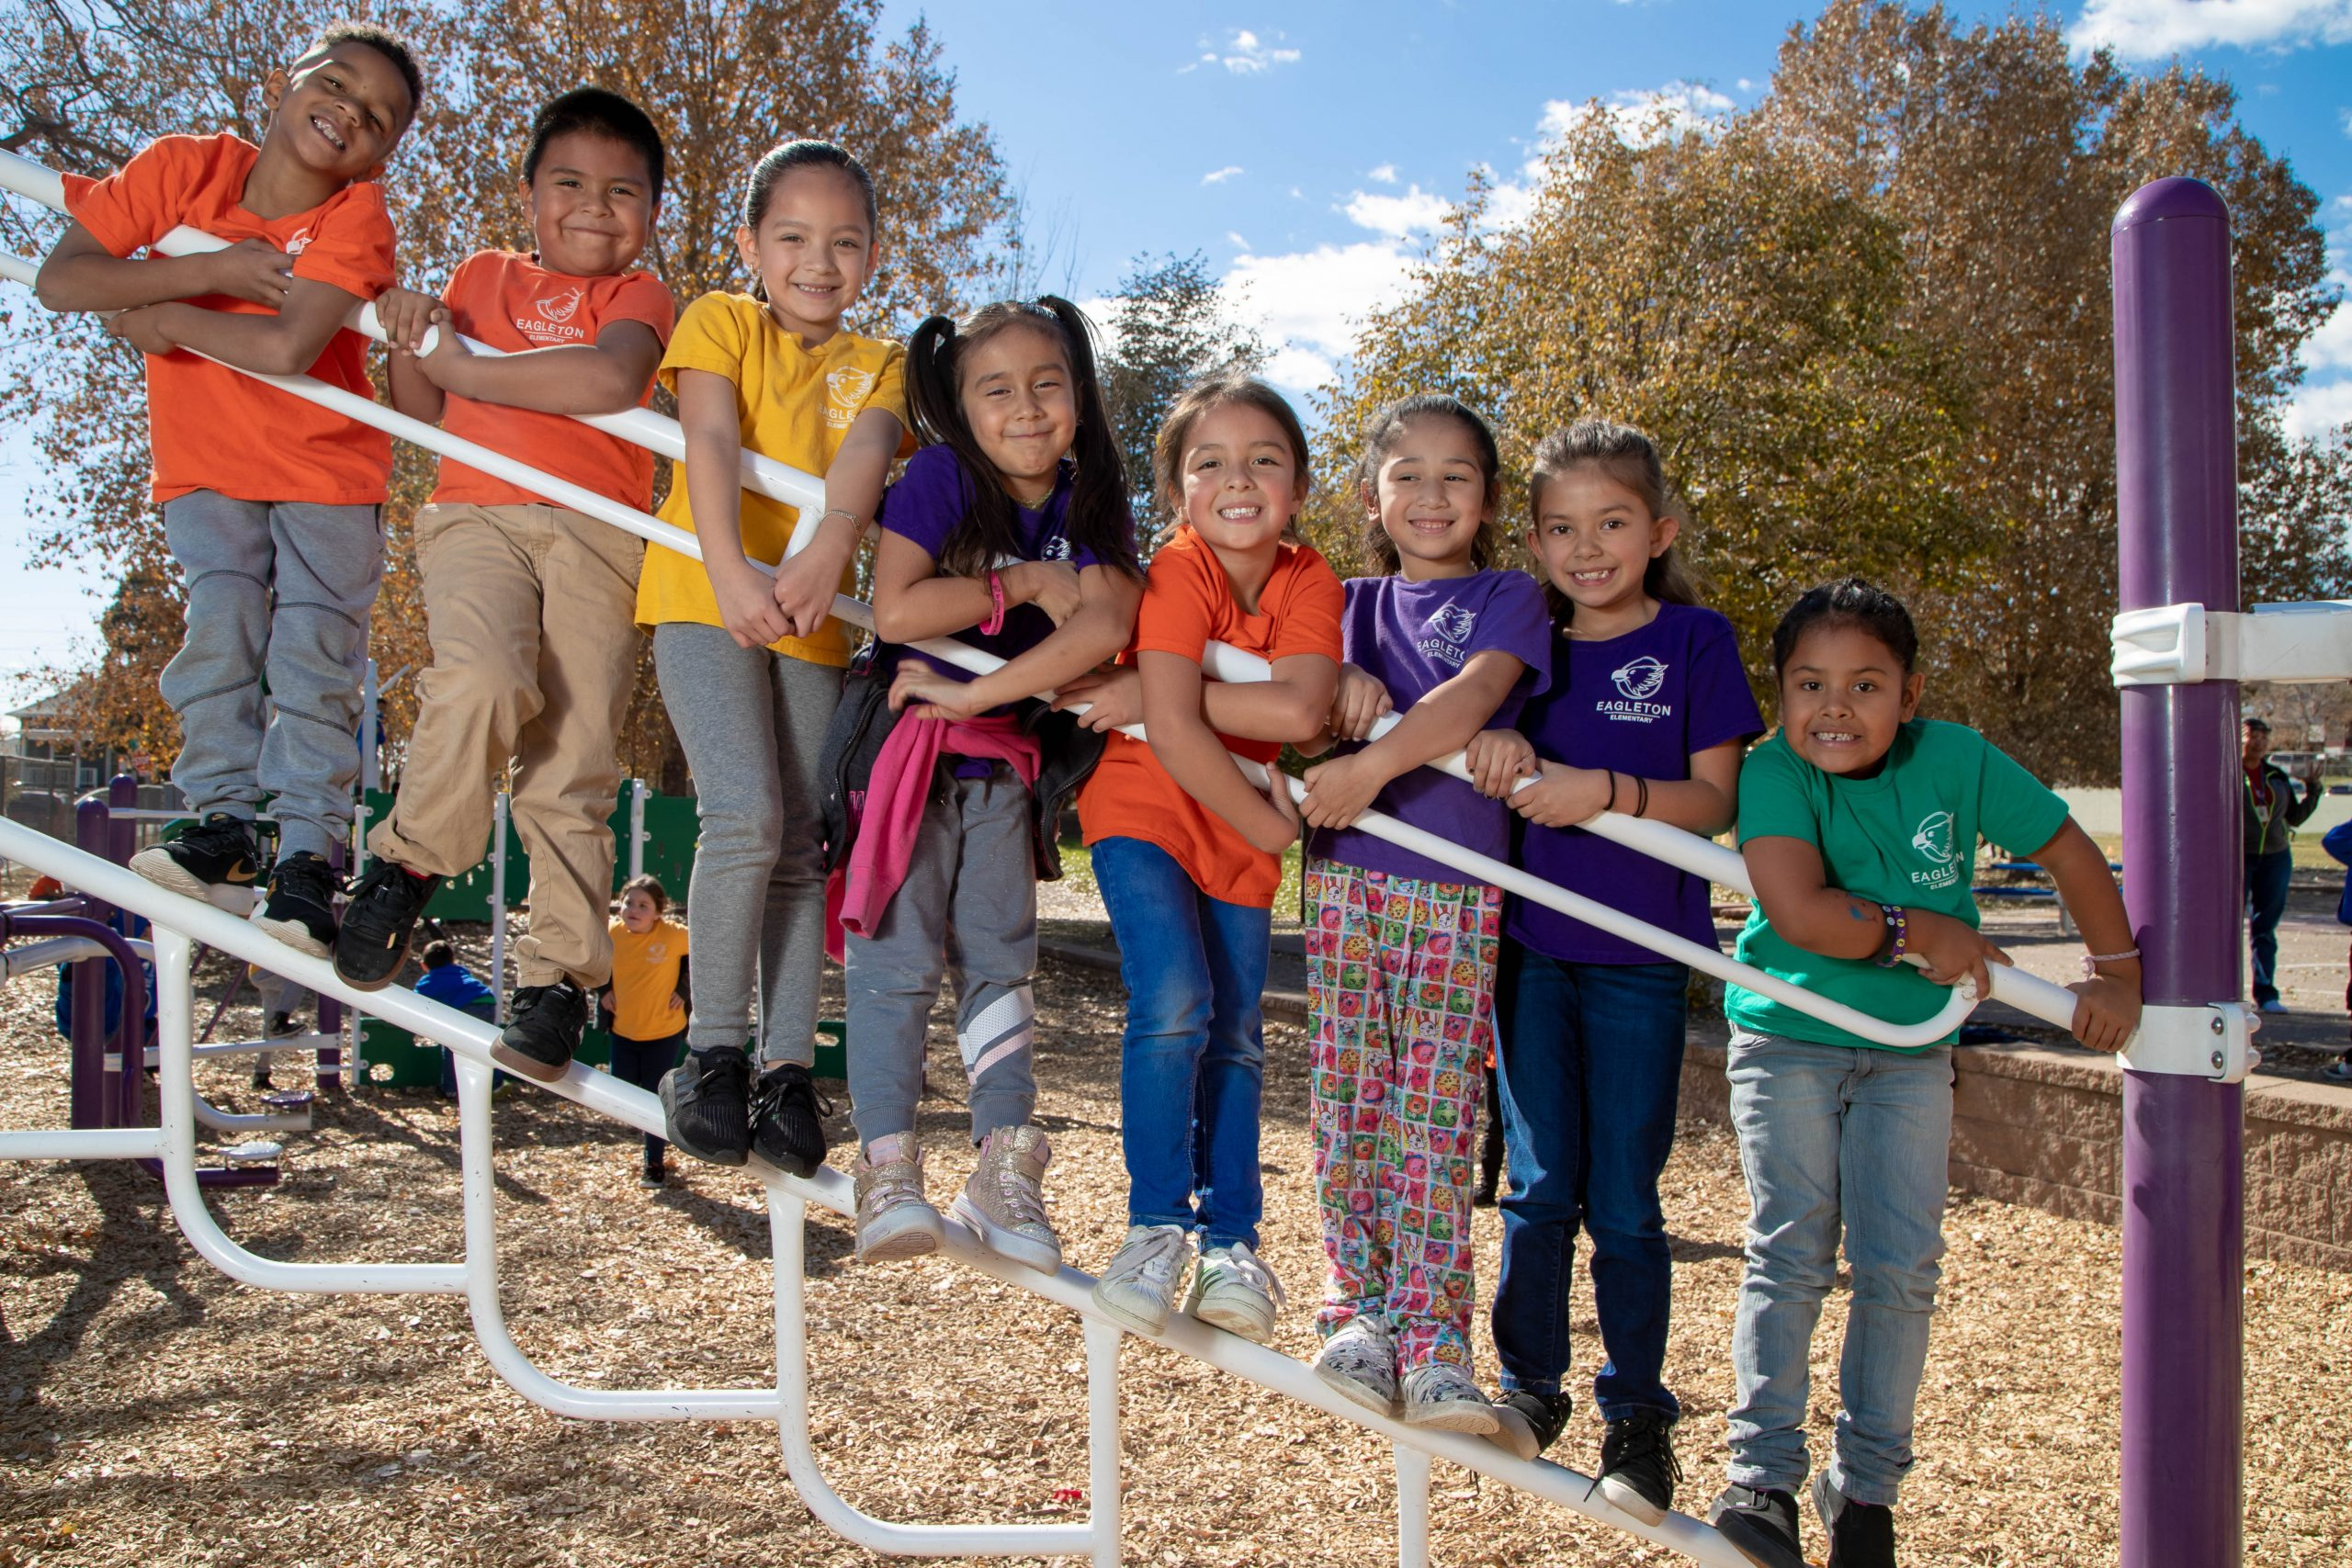 Eight students on the playground during recess